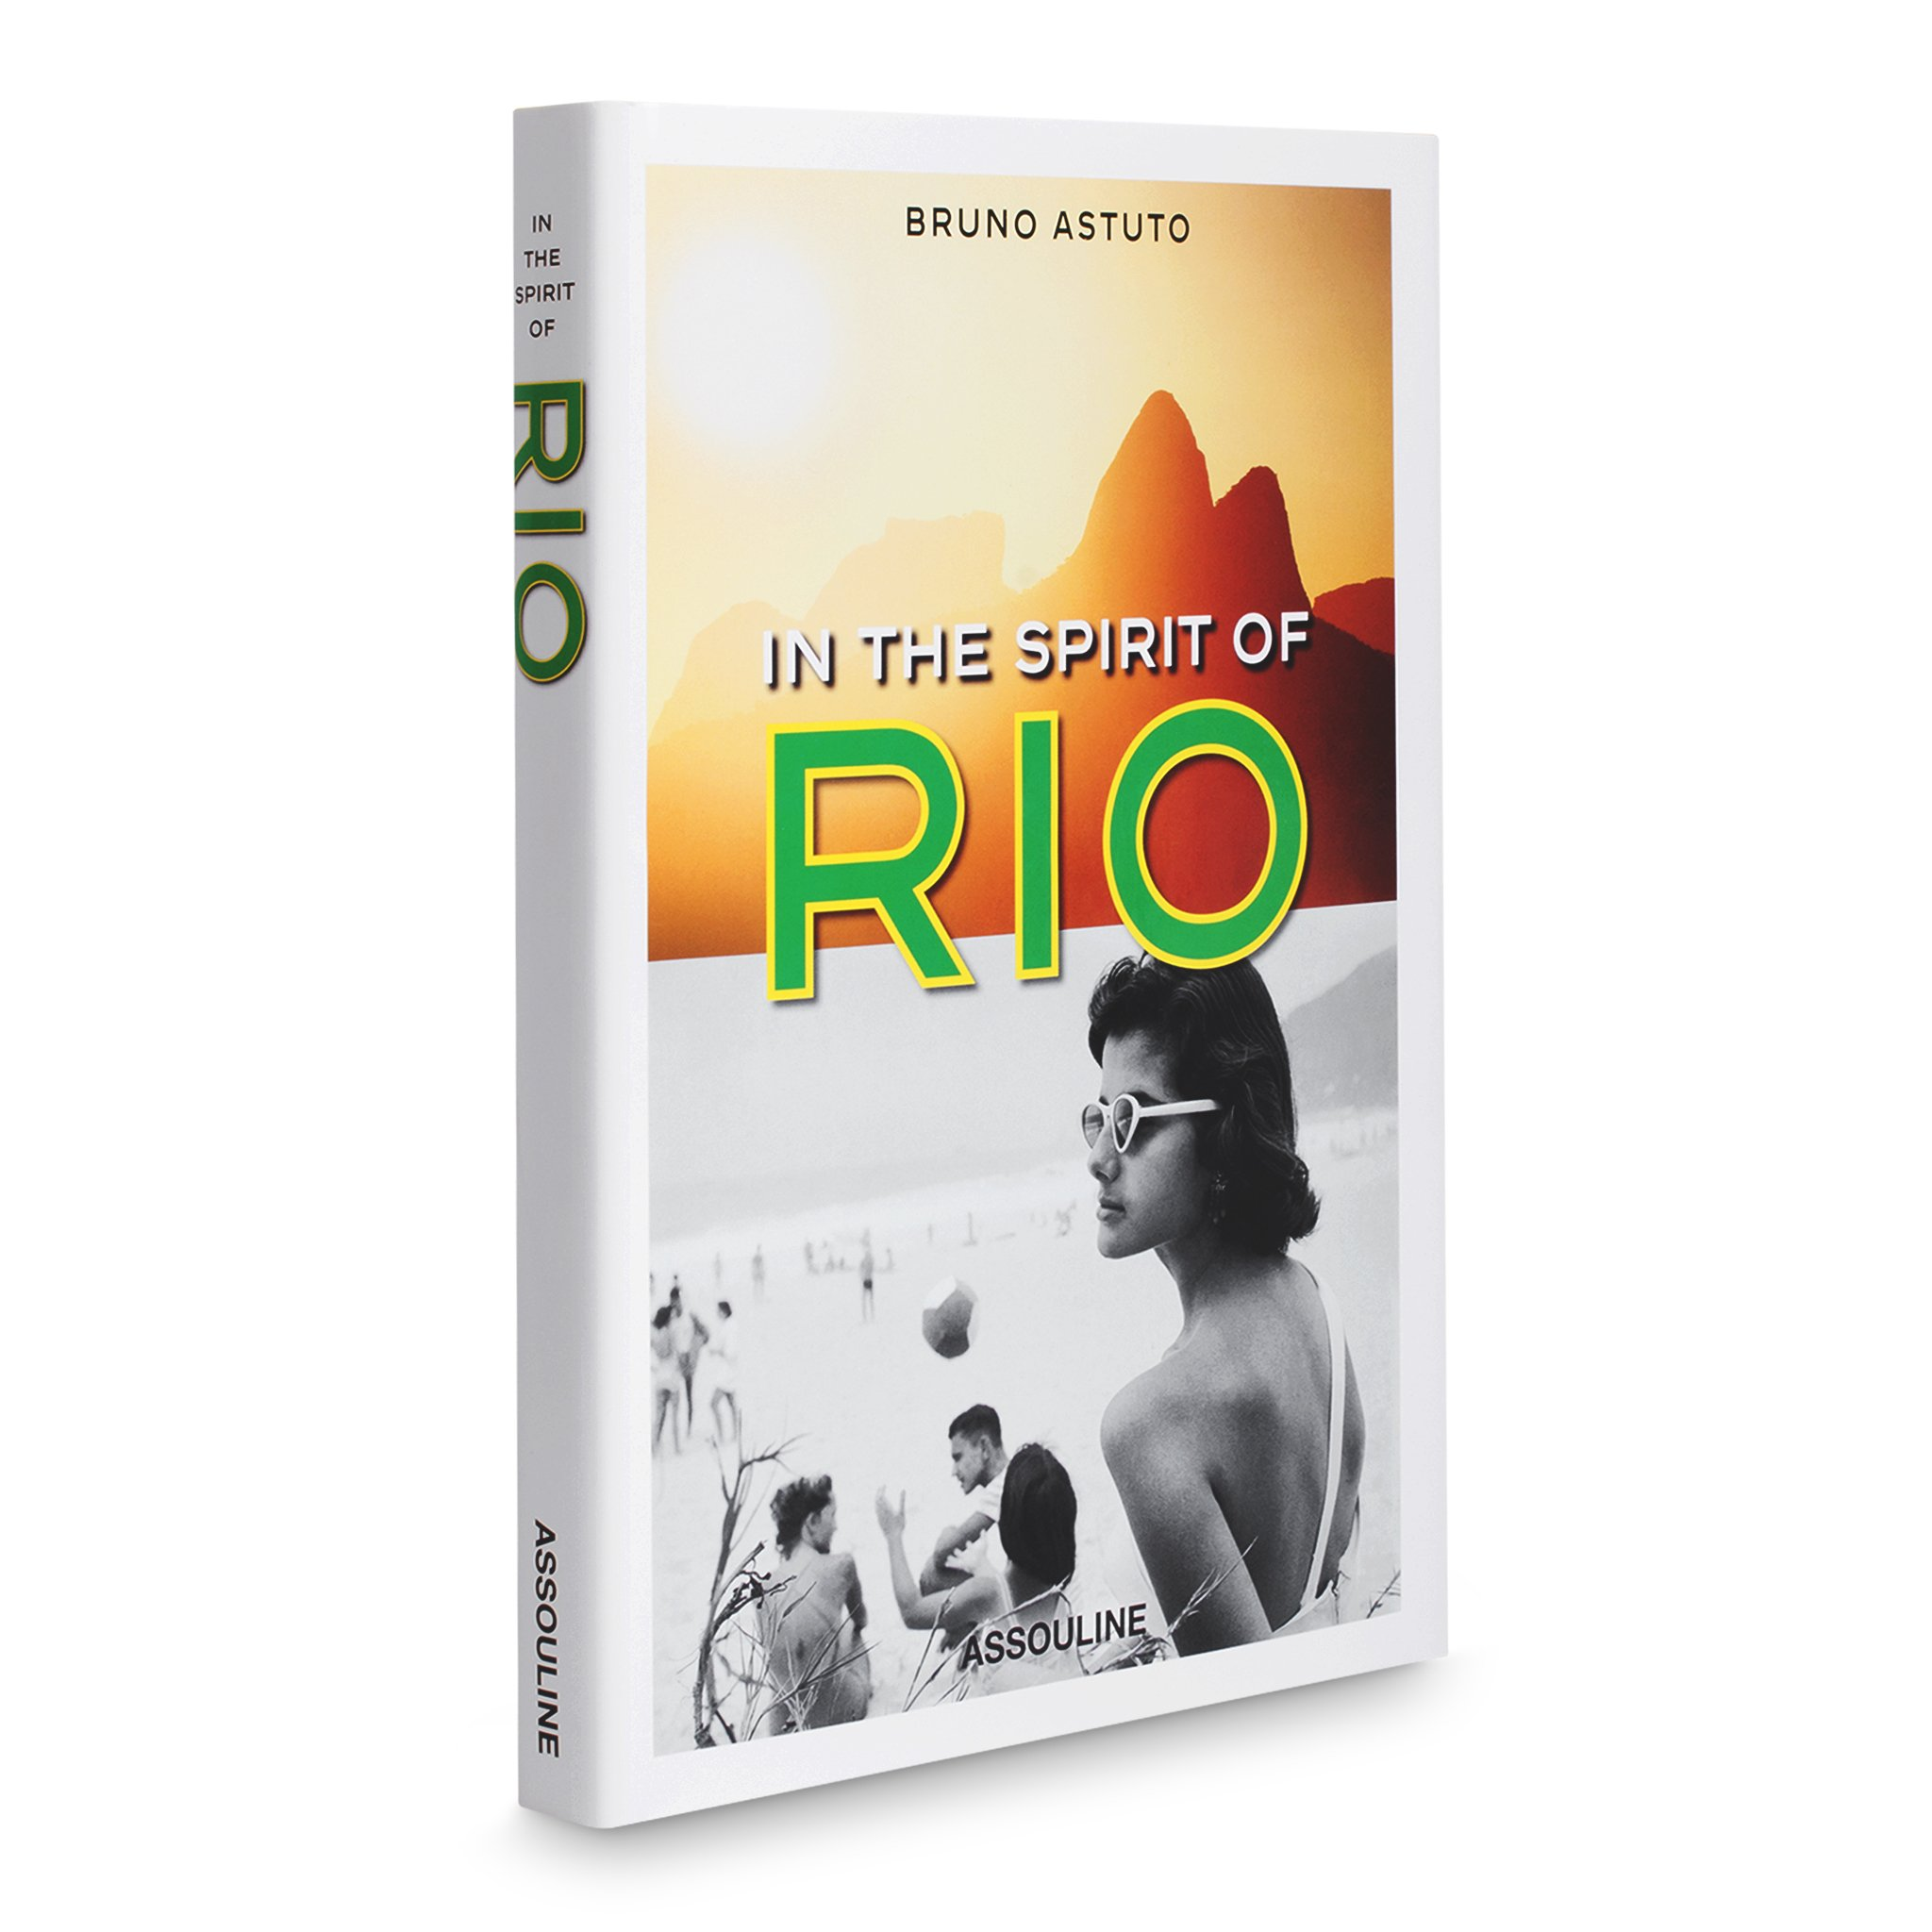 In the Spirit of Rio (Icons) by Editions Assouline